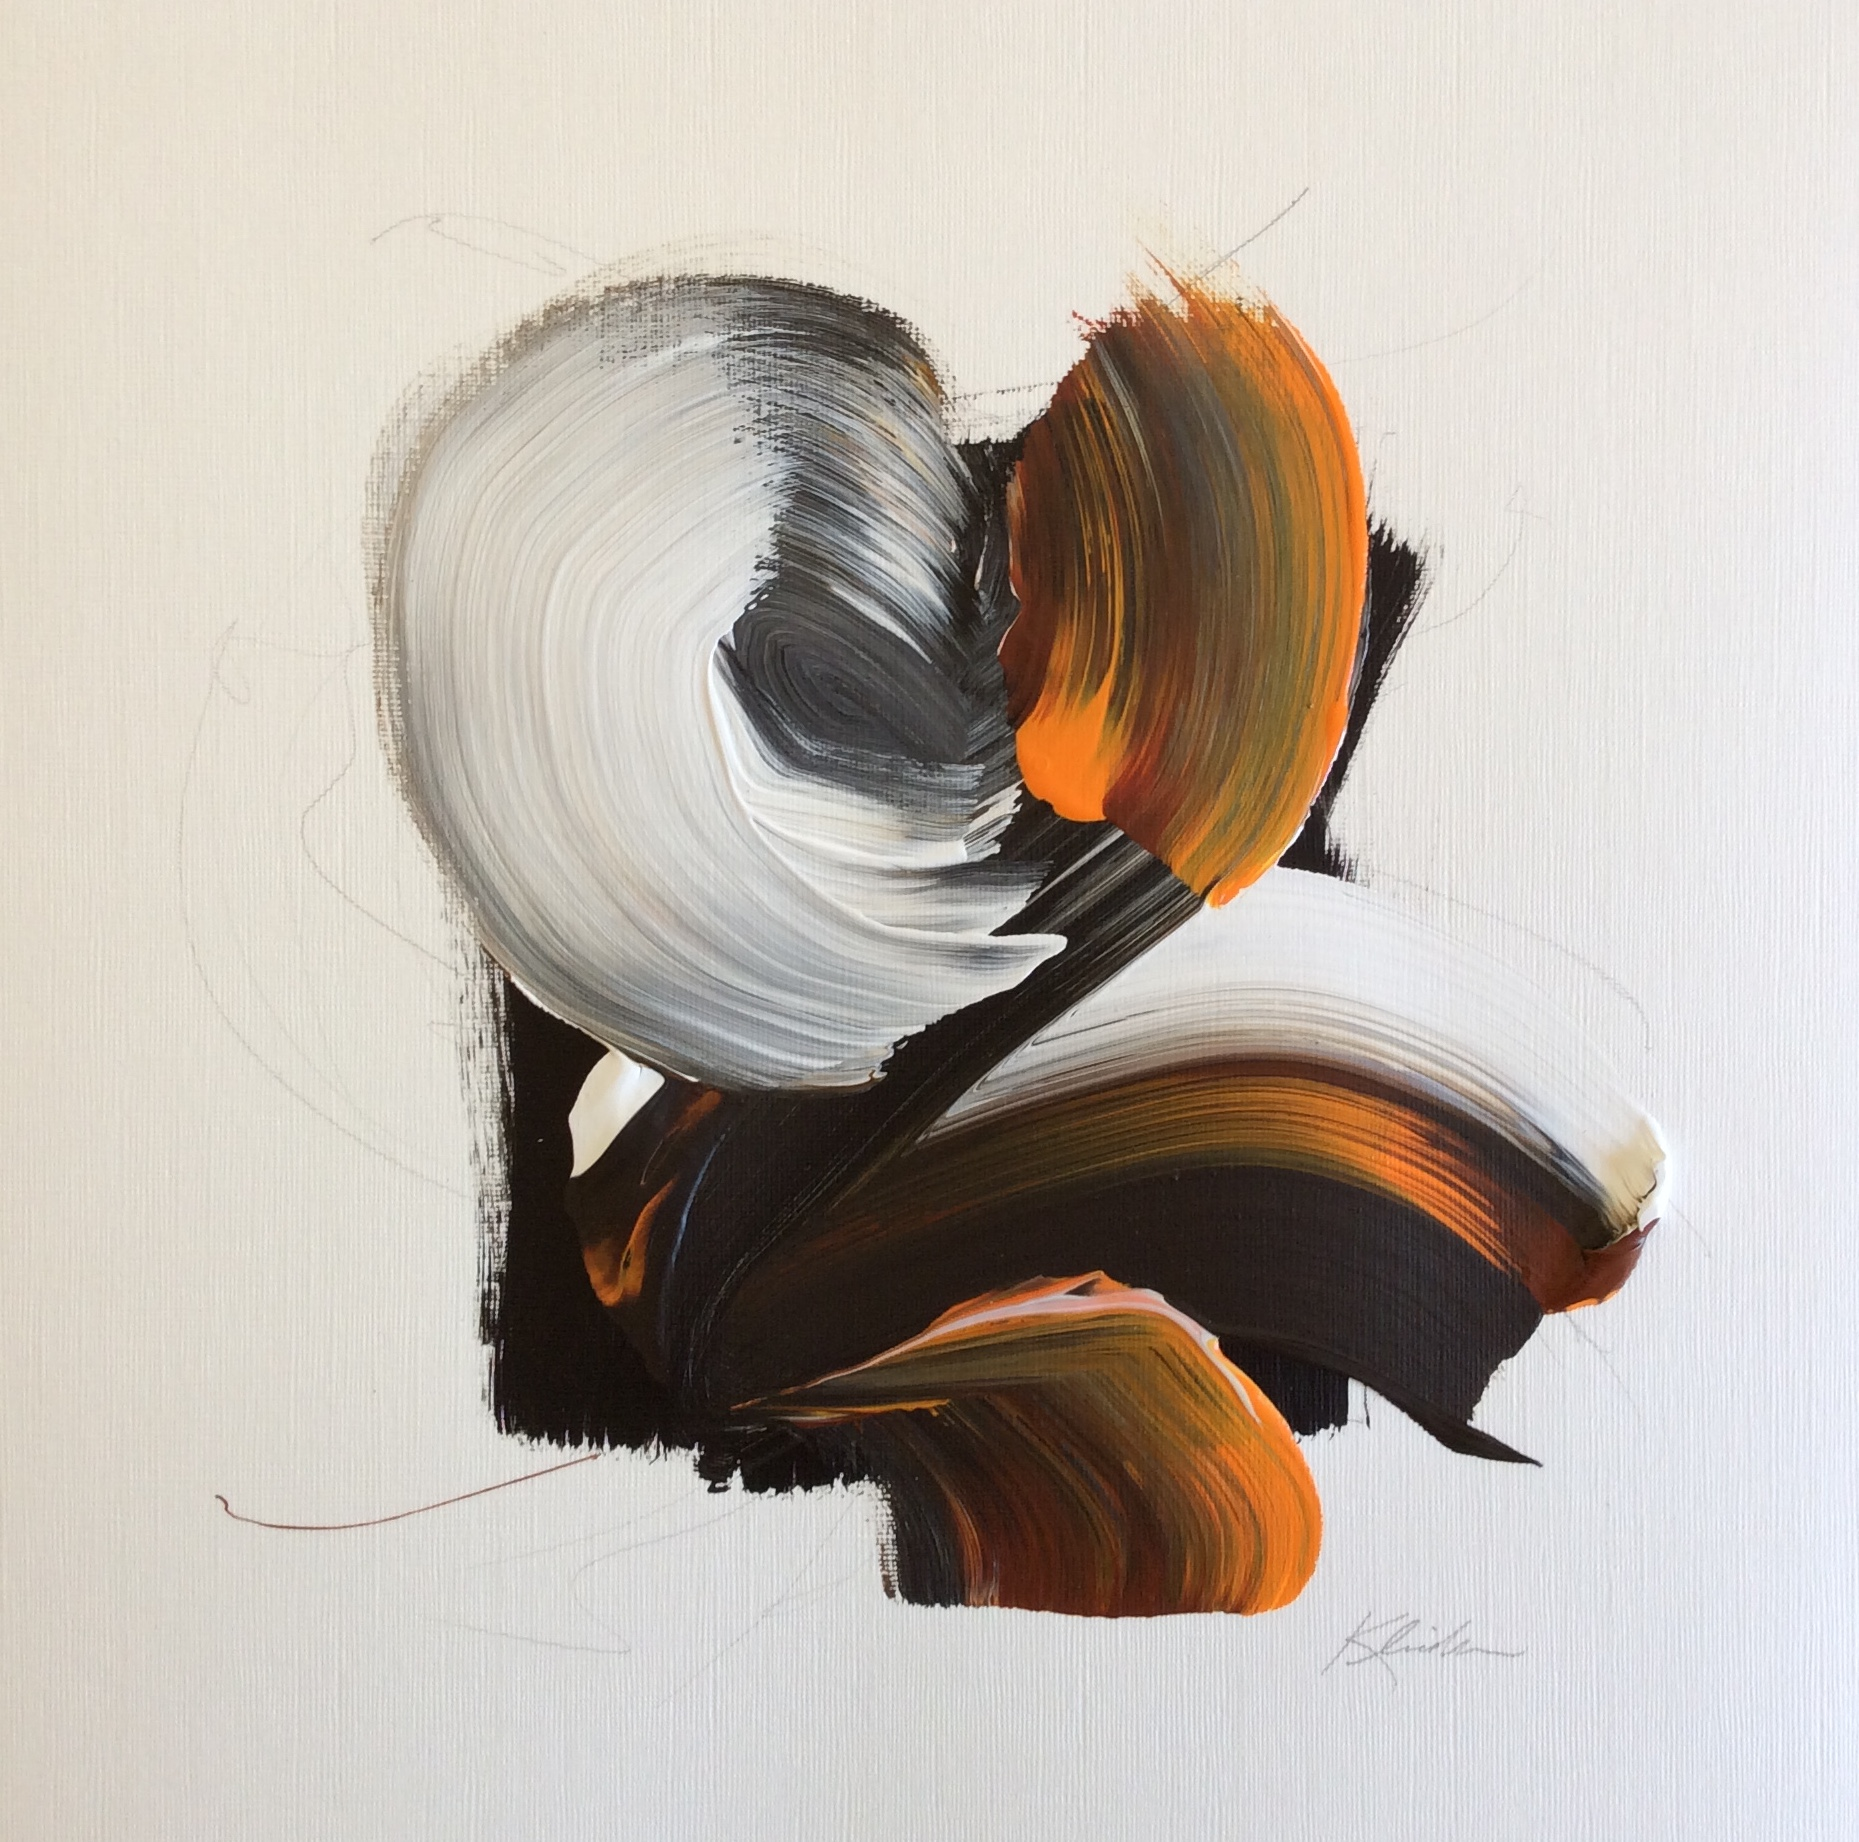 """Force 5 Series 1.1 , 2013, Acrylic and Graphite on Strathmore Paper, 20""""x 20"""".  Brush strokes in white orange and black on an irregular black background with black graphite lines."""